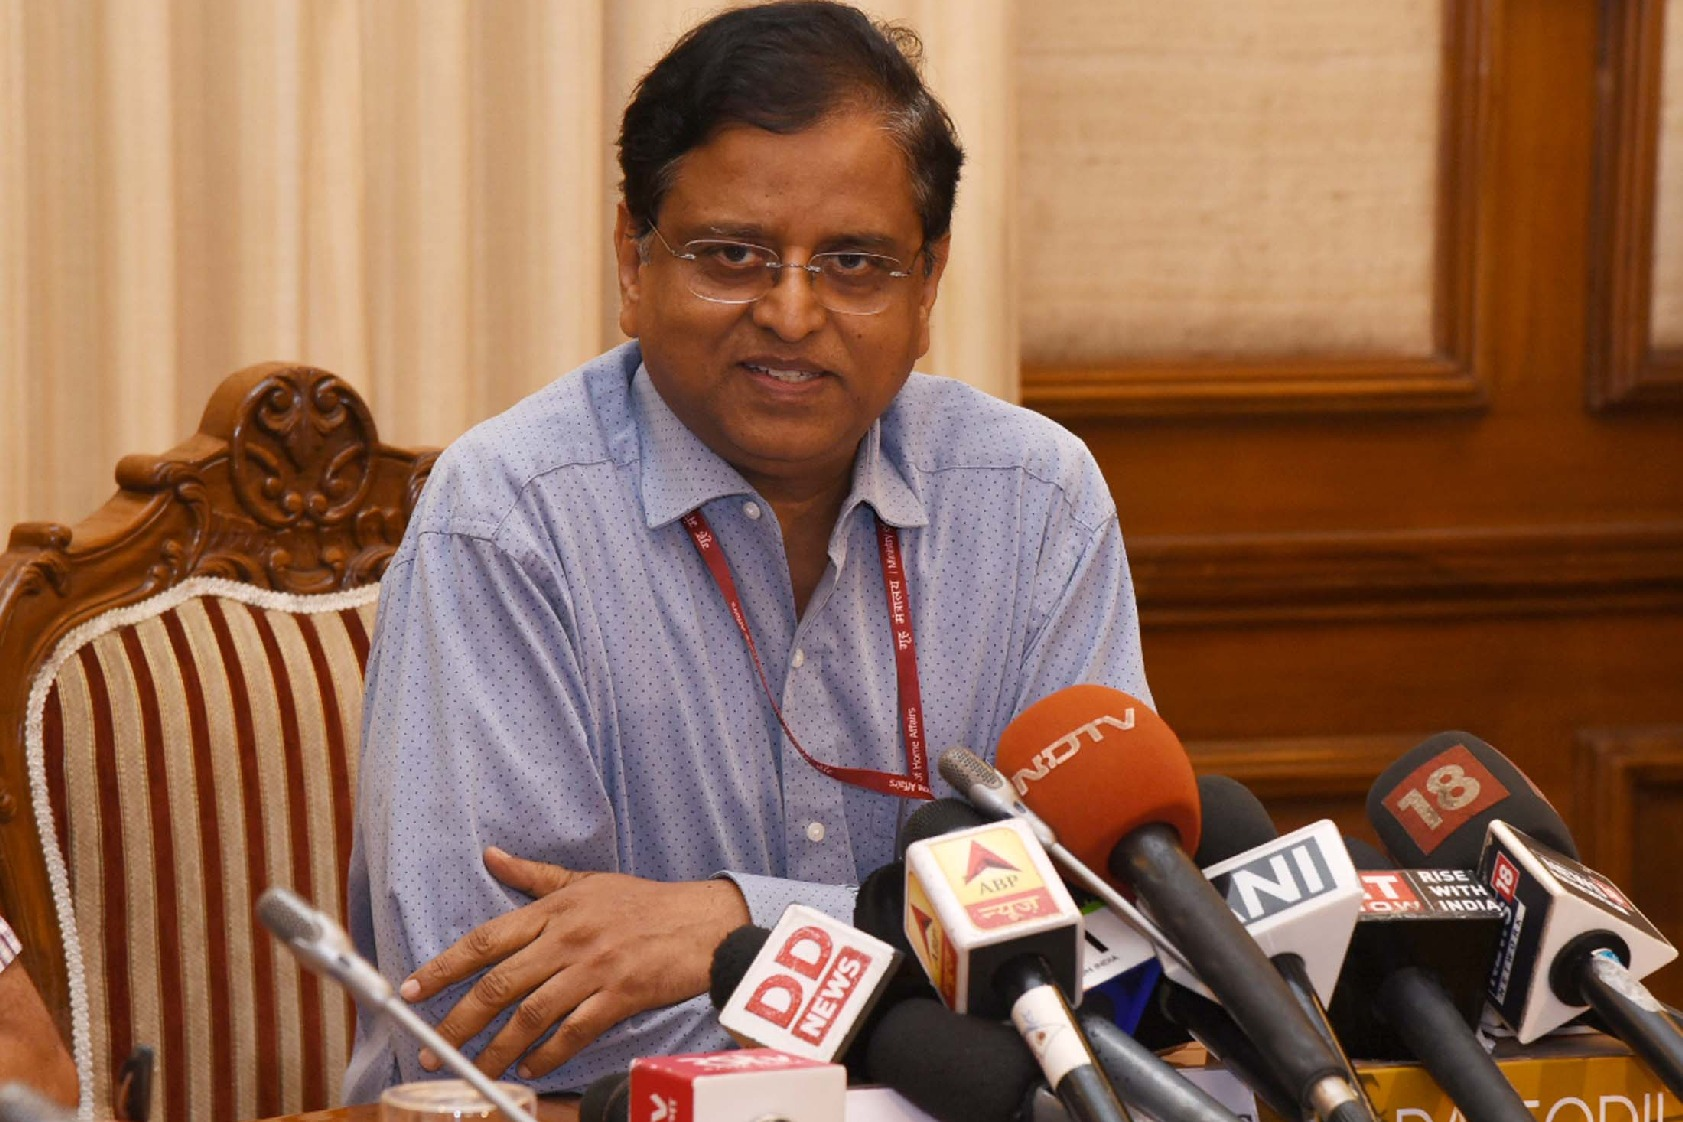 Subhash Chandra Garg alleges Nirmala Sitharaman